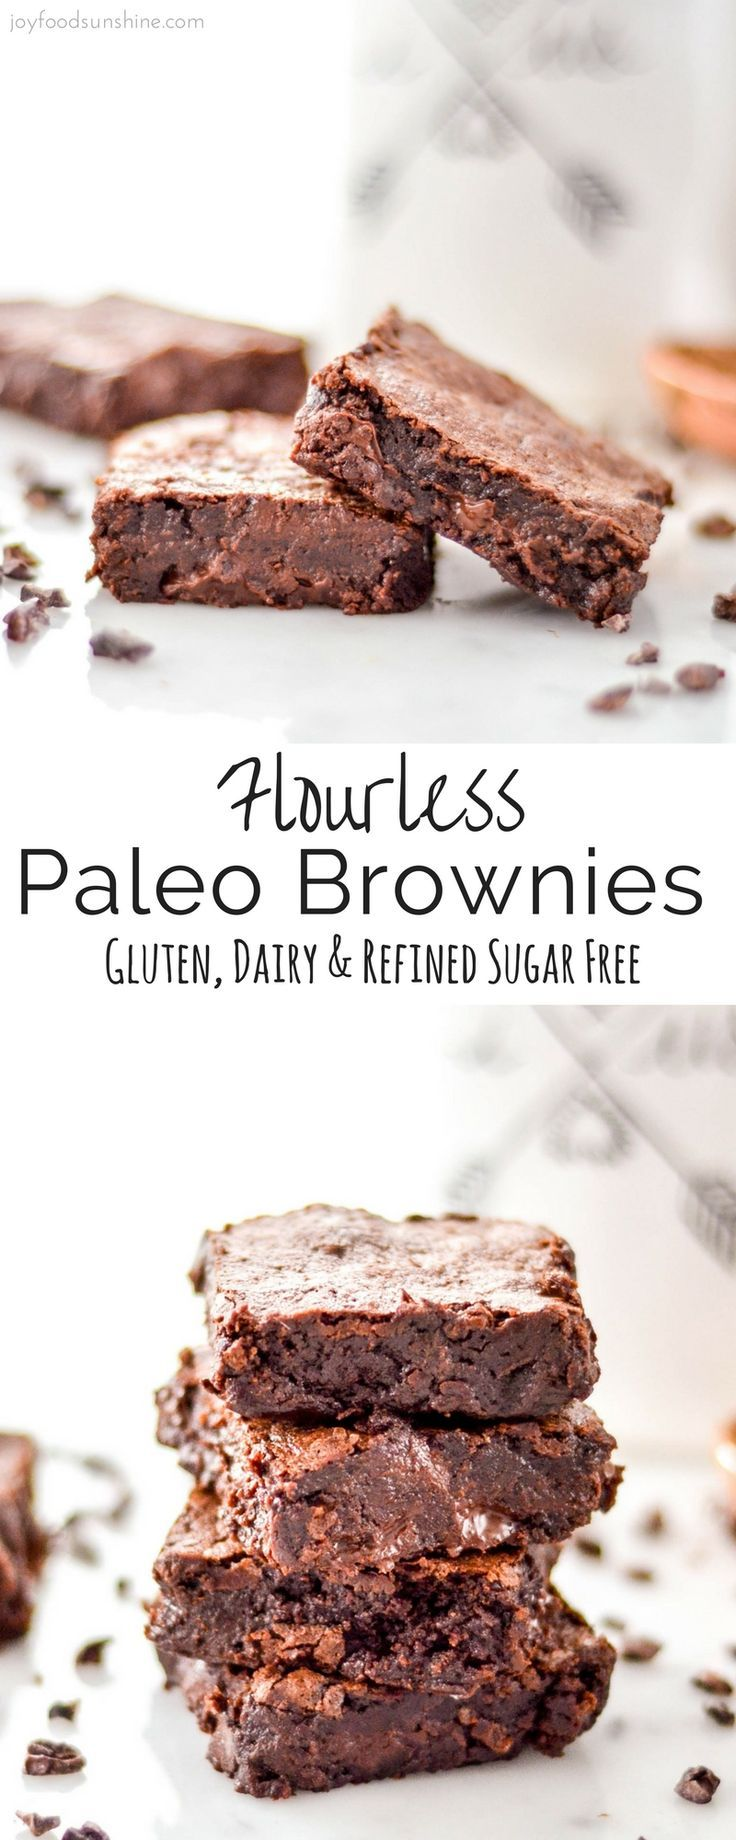 """These super fudgy Flourless Paleo Brownies taste better than their """"normal"""" brownie counterparts and are totally allergy friendly! Gluten-free, dairy-free, nut-free with no refined sugar! The perfect dessert to serve a crowd!"""